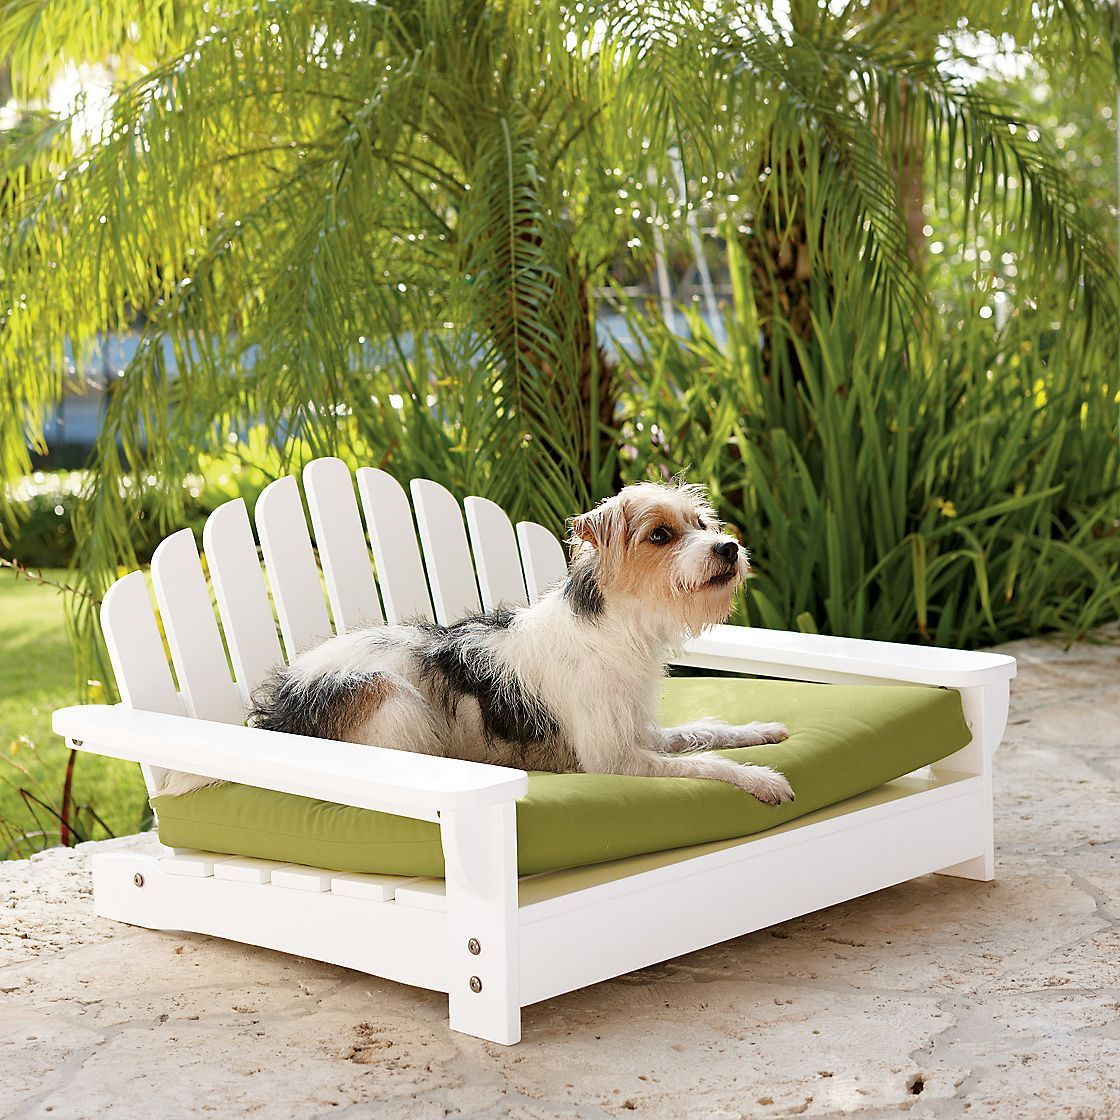 For Gumbo To Use At The Beach House Adirondack Collection Outdoor Pet Bed Company